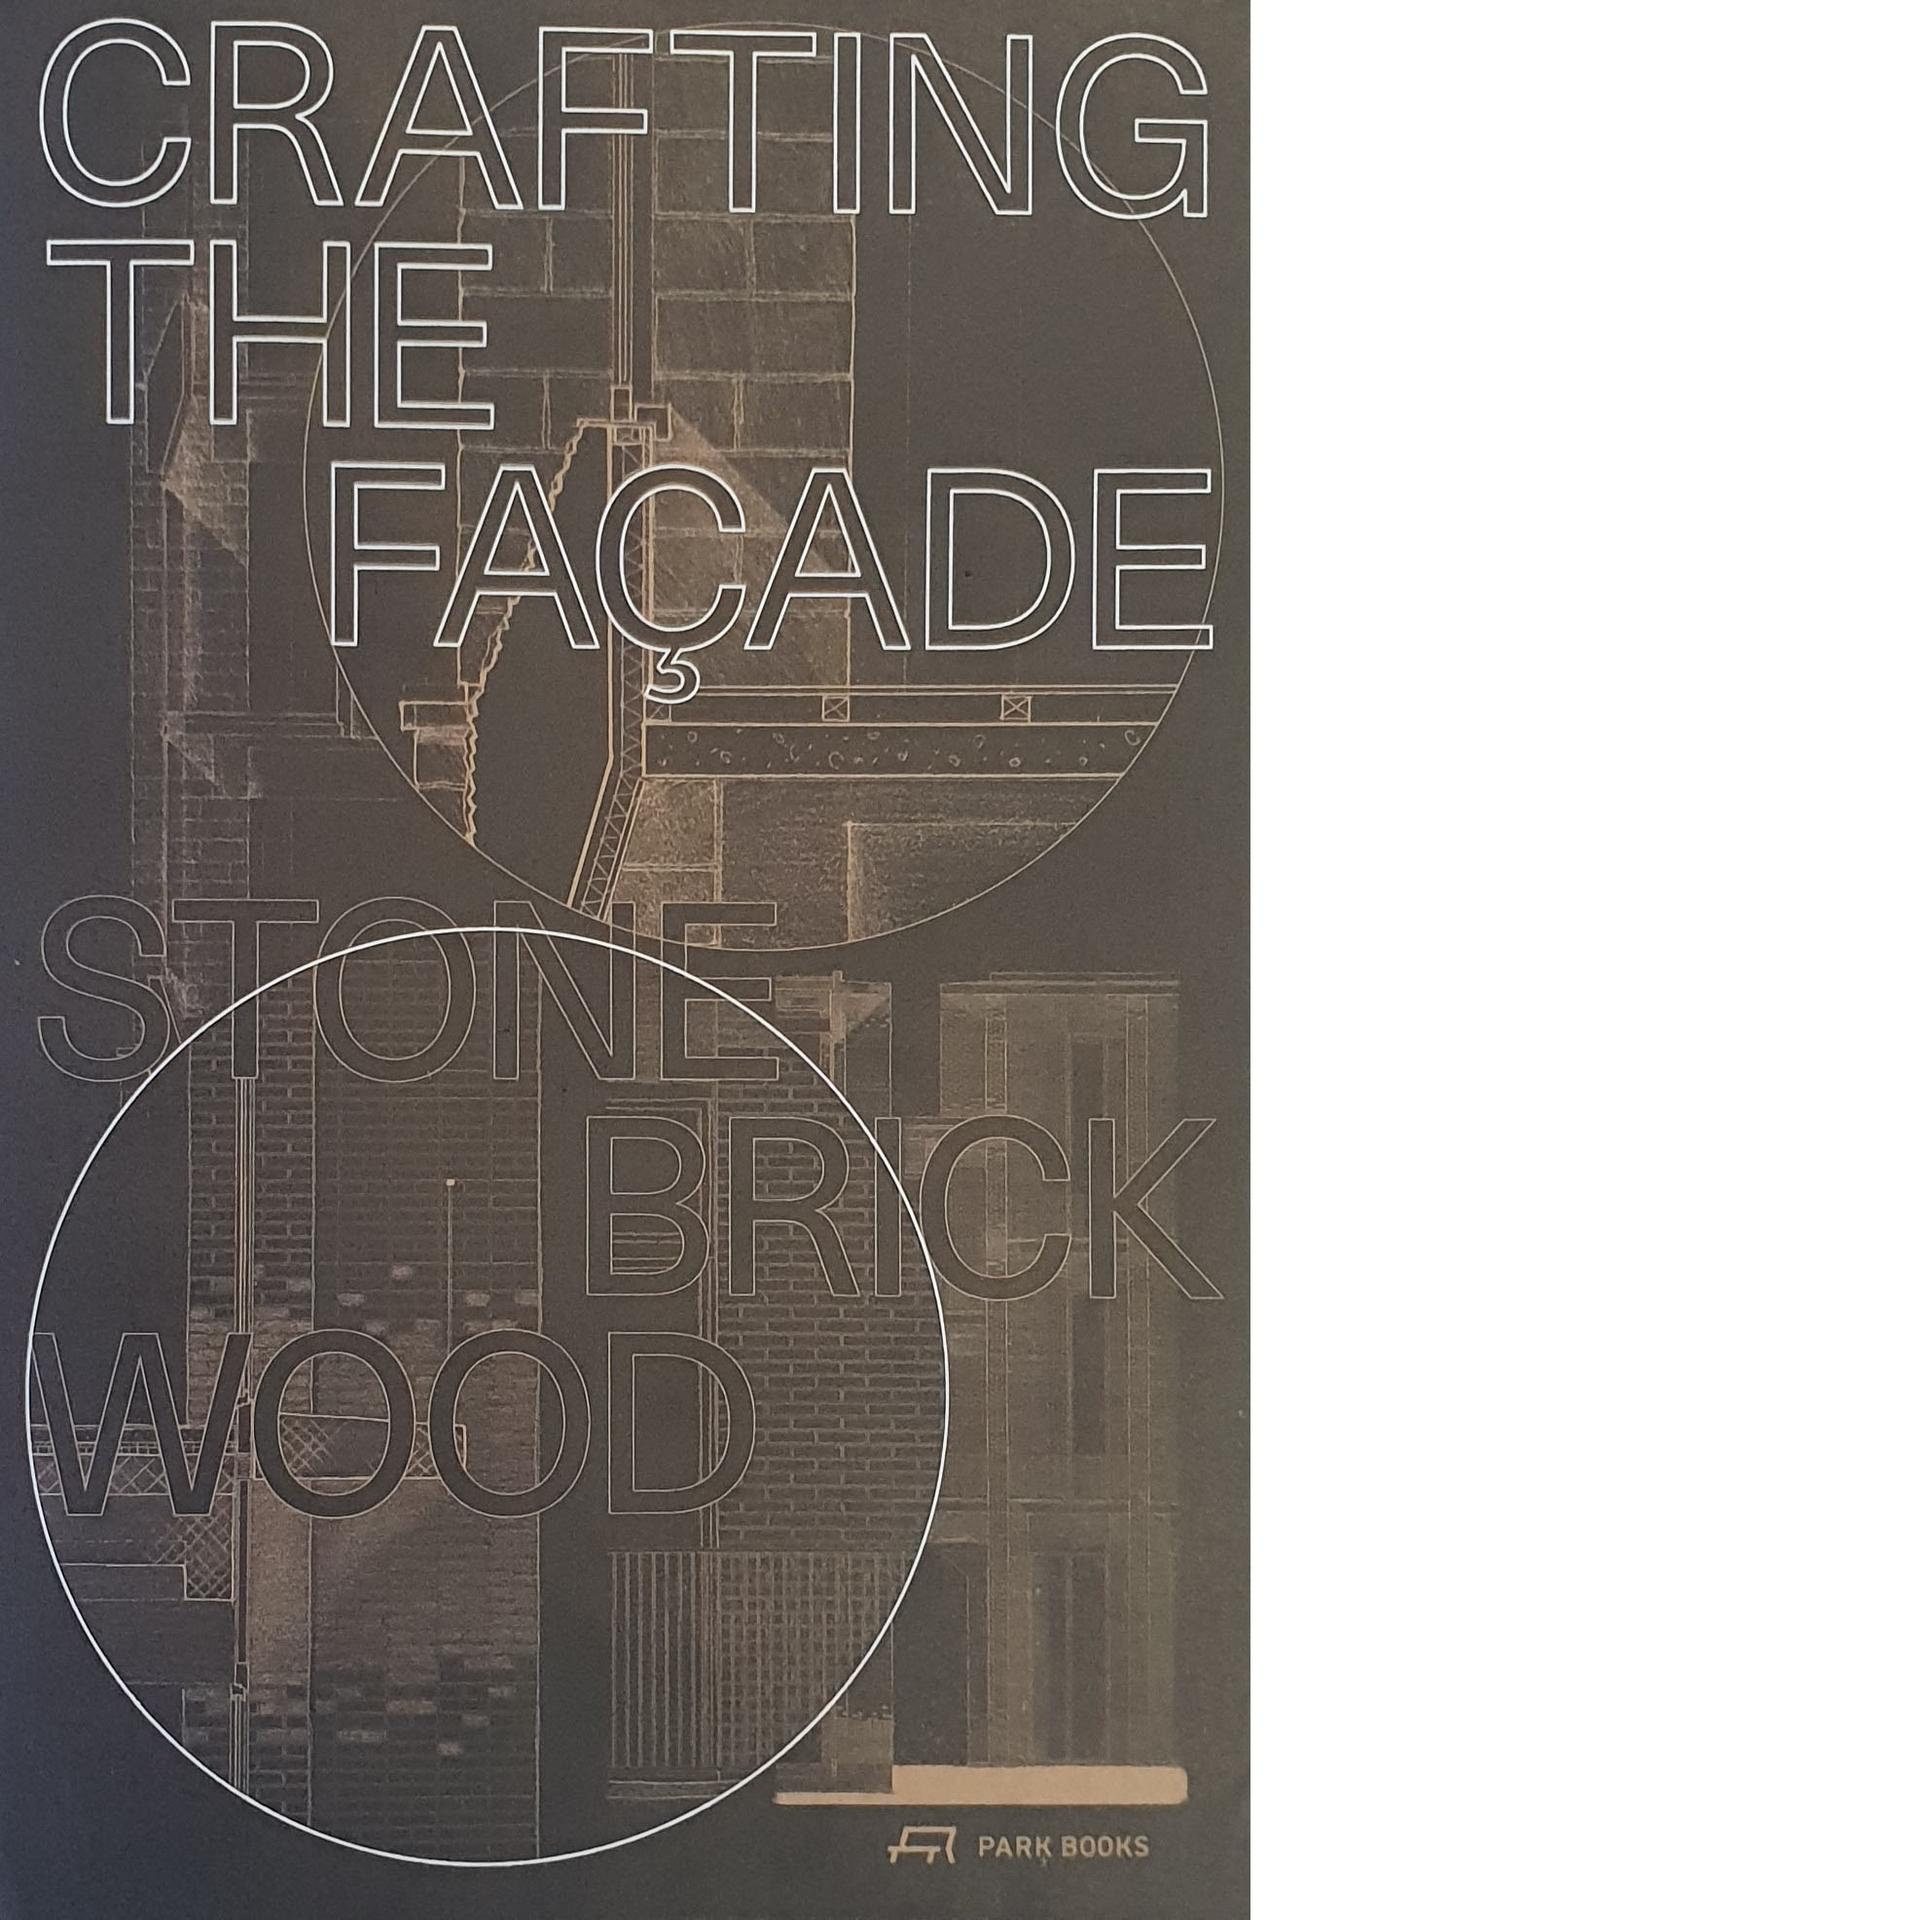 Crafting the Façade - Stone Brick Wood